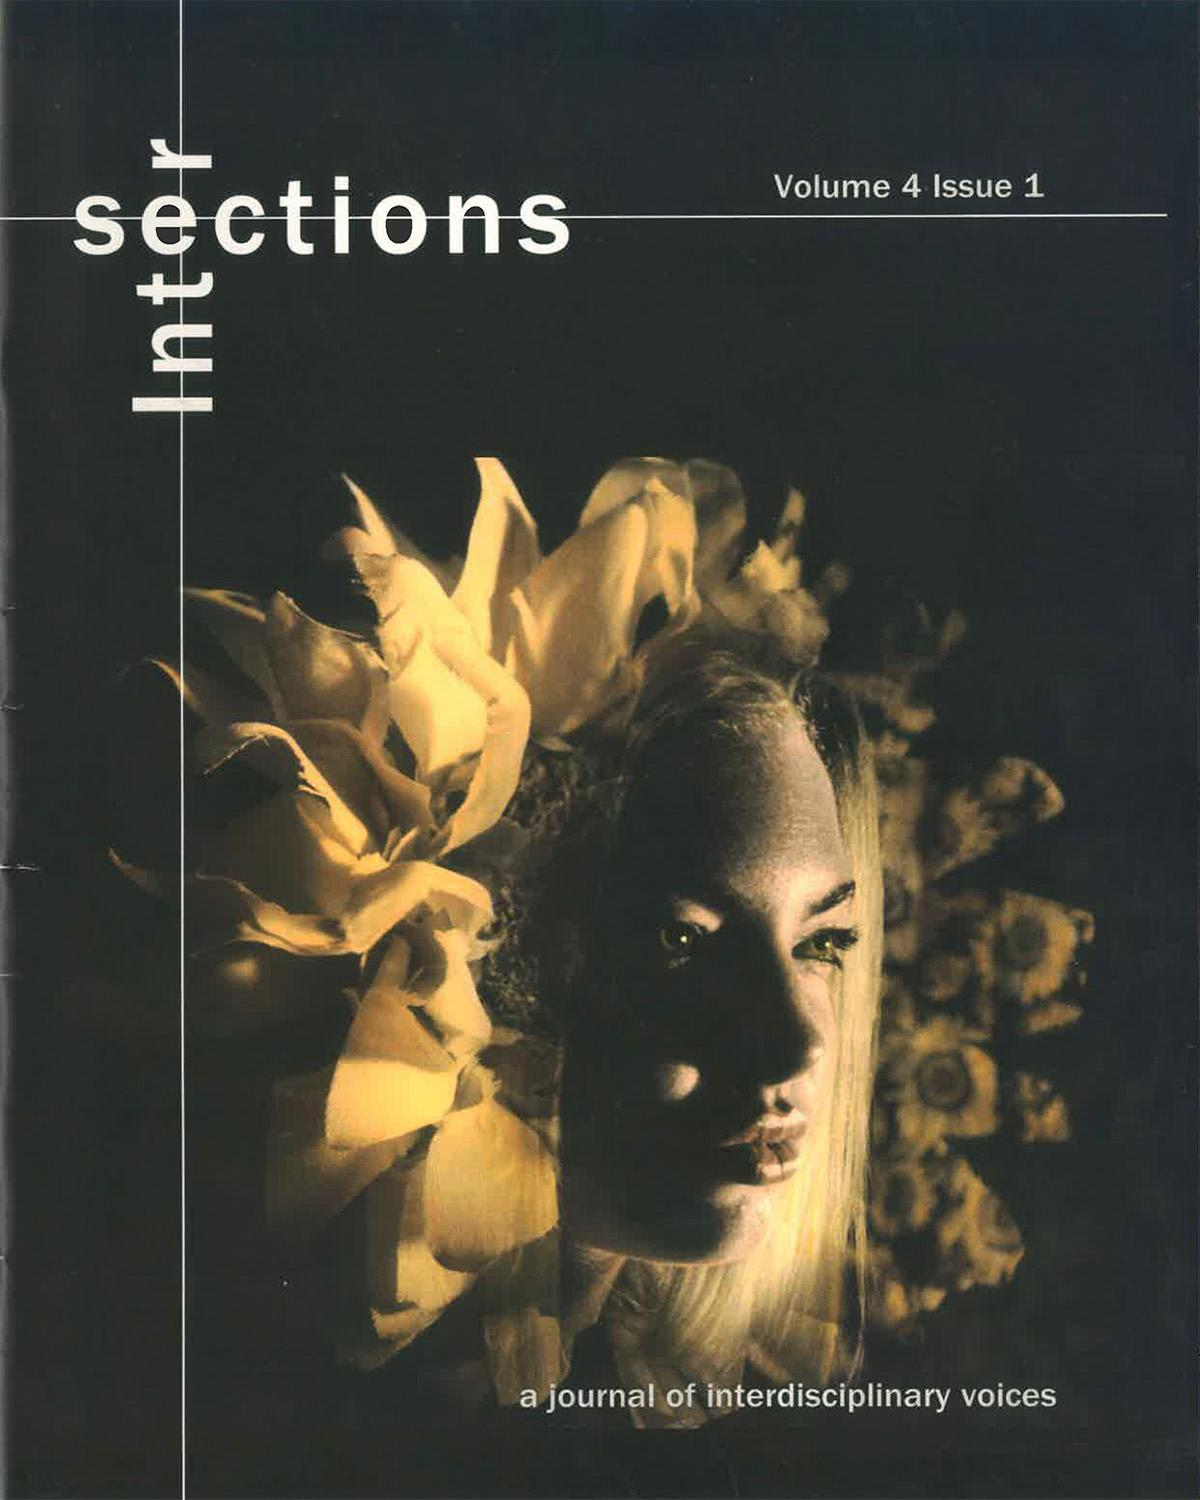 Intersections Volume 4 Issue 1